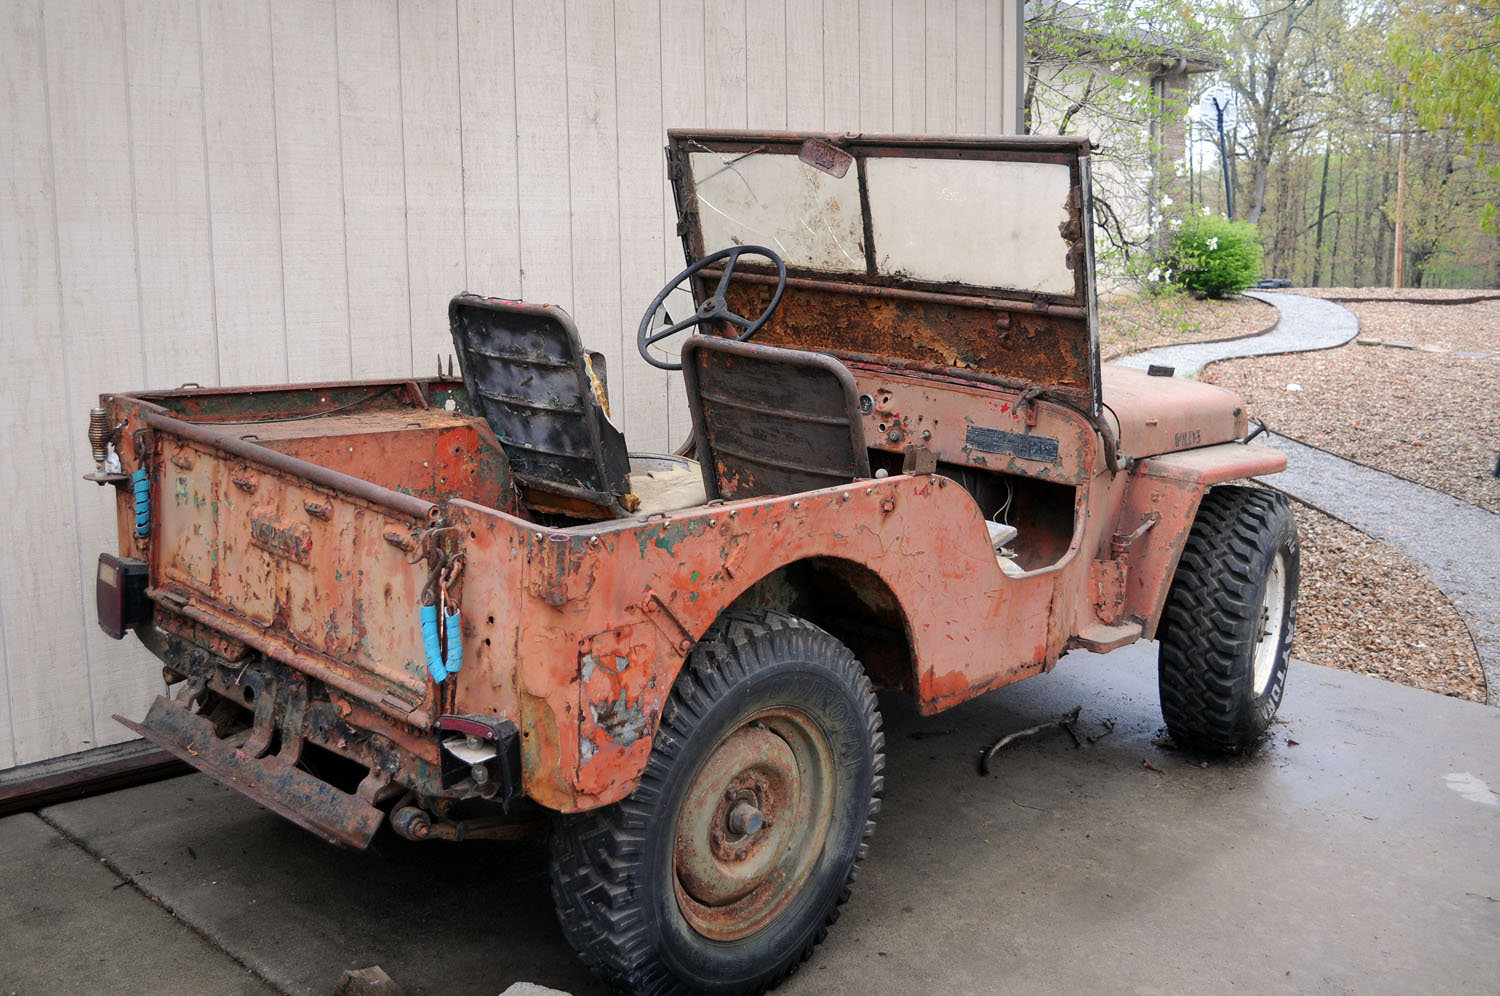 willys jeepster for sale craigs list autos weblog. Black Bedroom Furniture Sets. Home Design Ideas